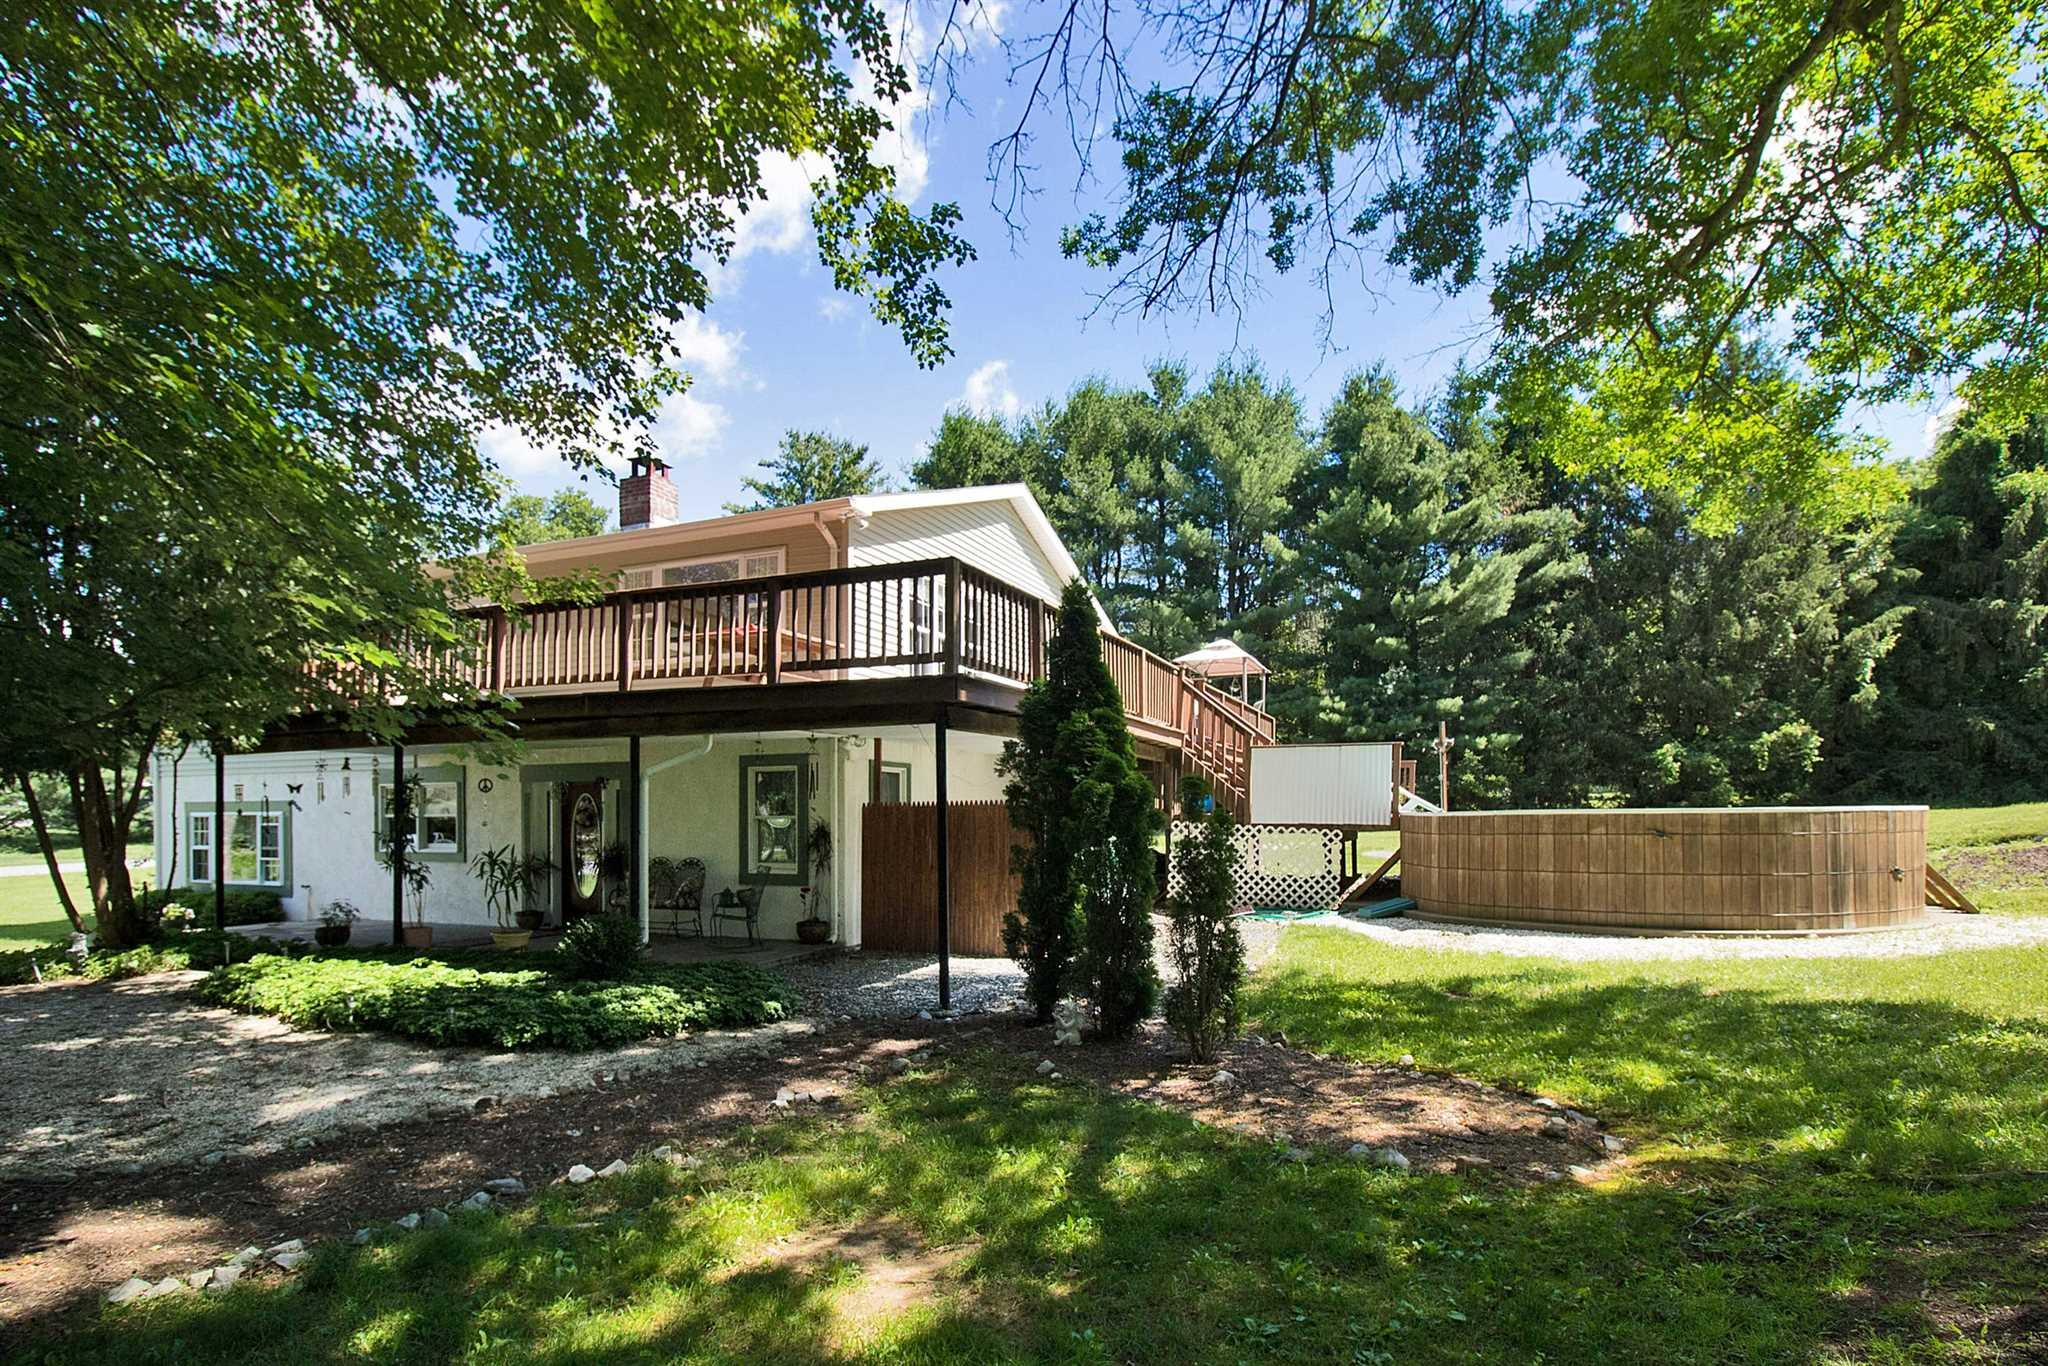 Single Family Home for Sale at 43 TOMPKINS Road 43 TOMPKINS Road Union Vale, New York 12585 United States